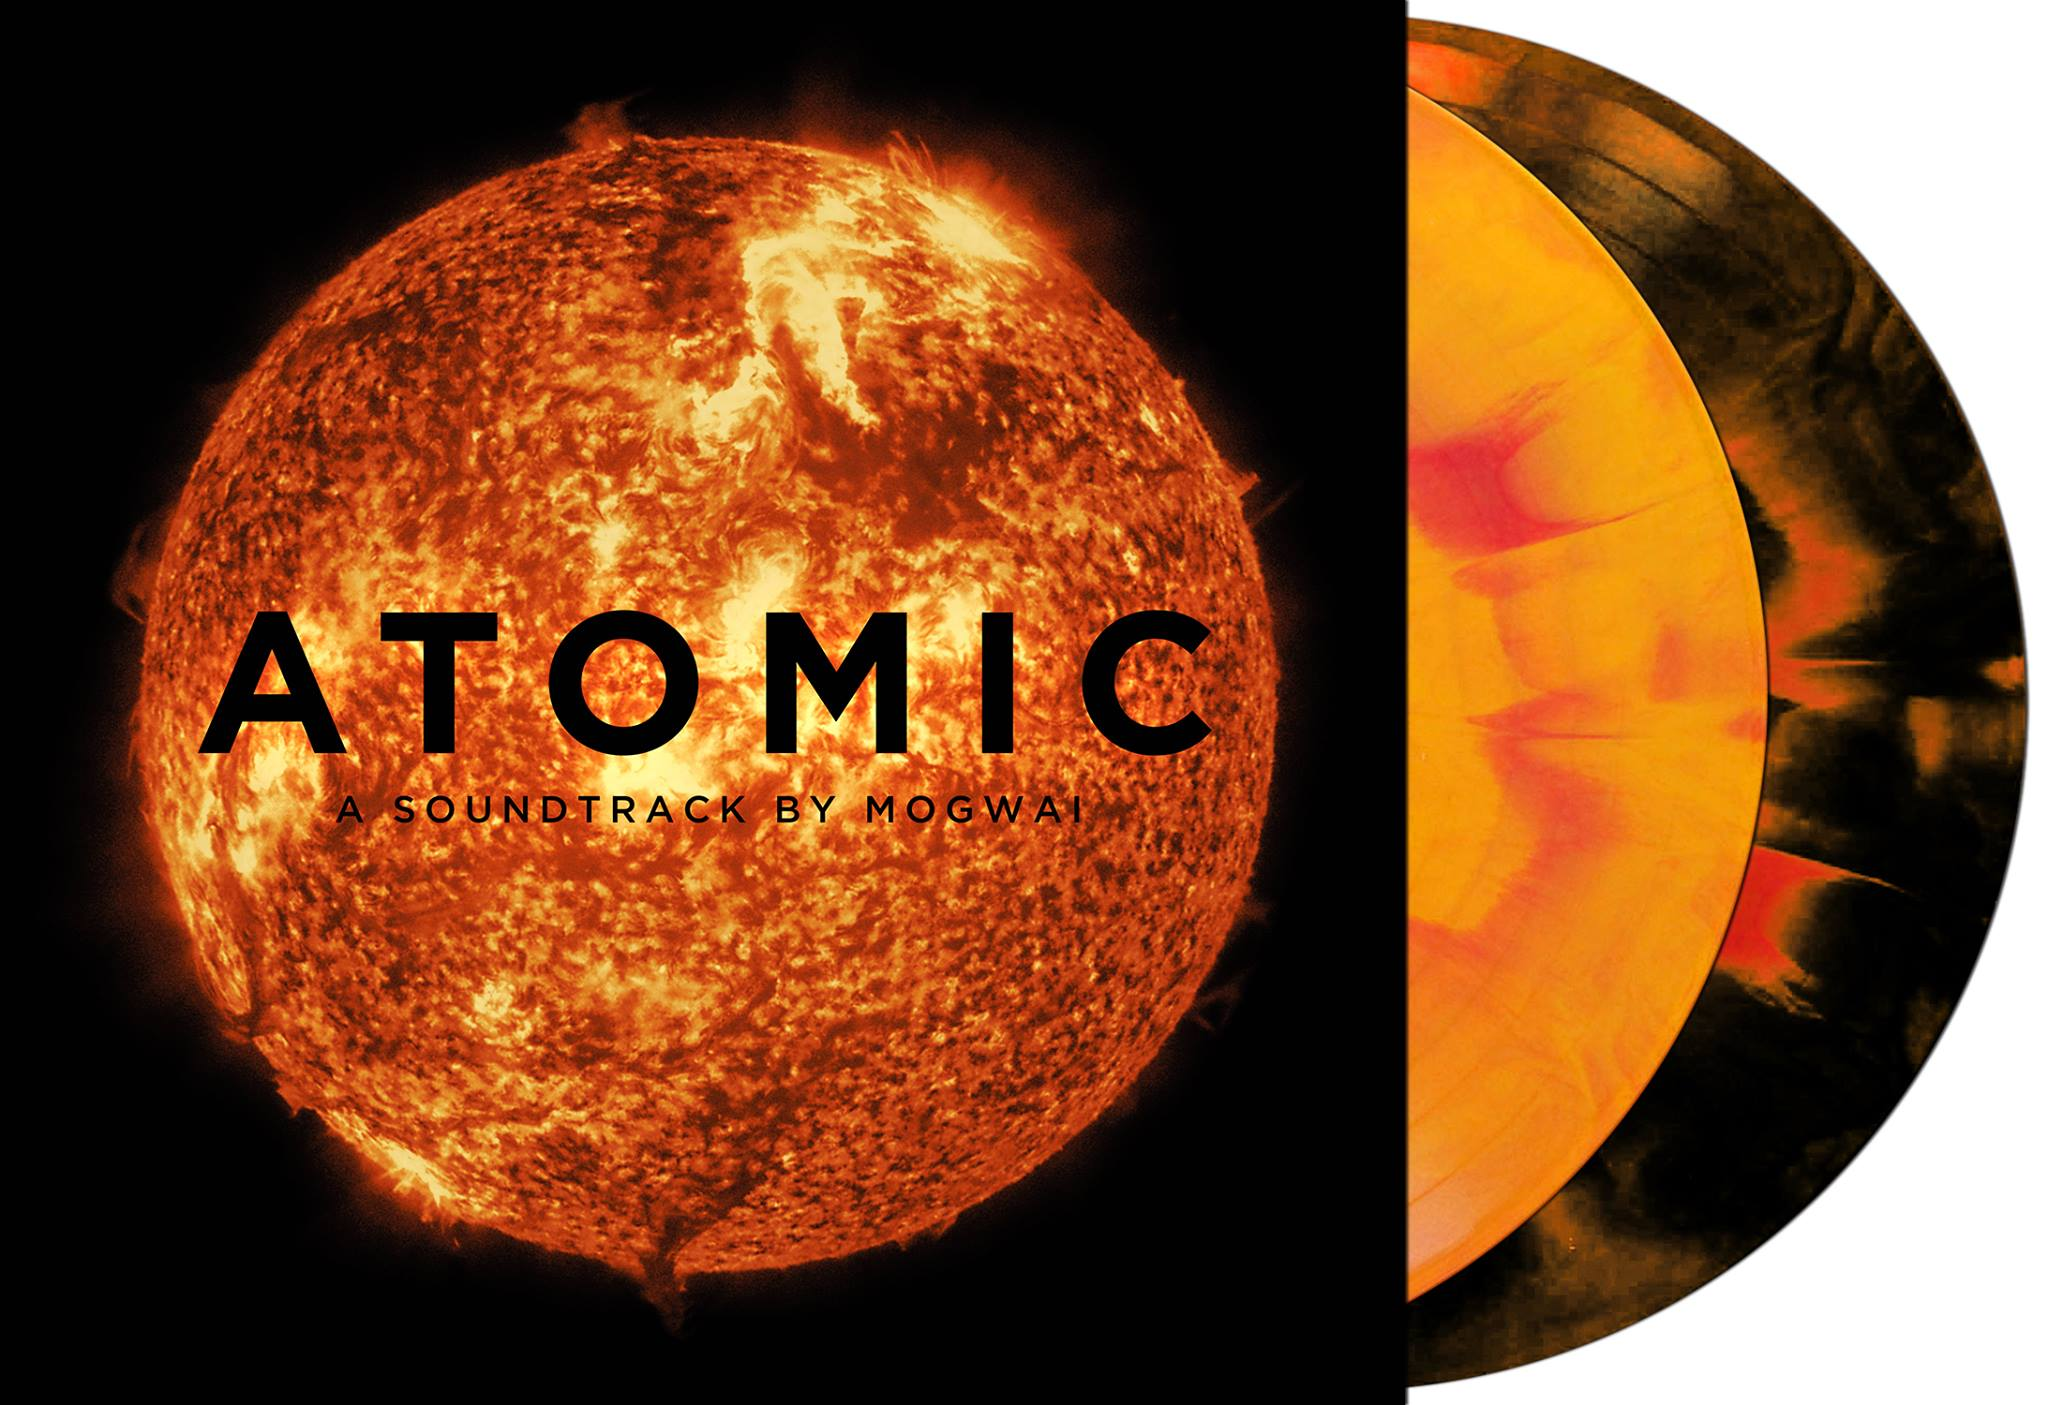 Mogwai, Variant, Atomic, Artwork, Vinyl